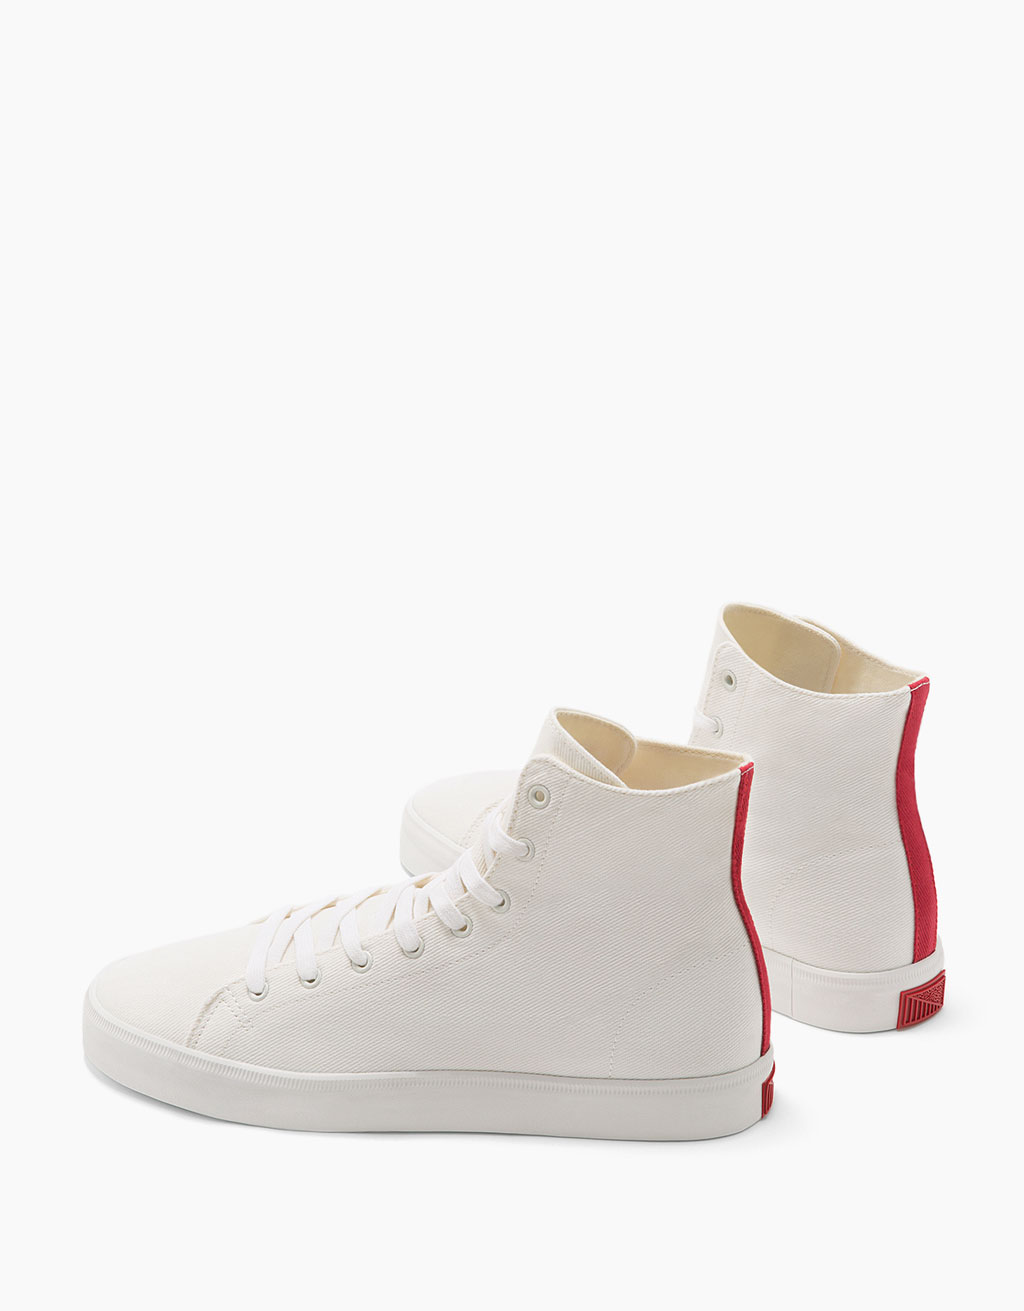 Men's fabric high-top sneakers with coloured heel detail